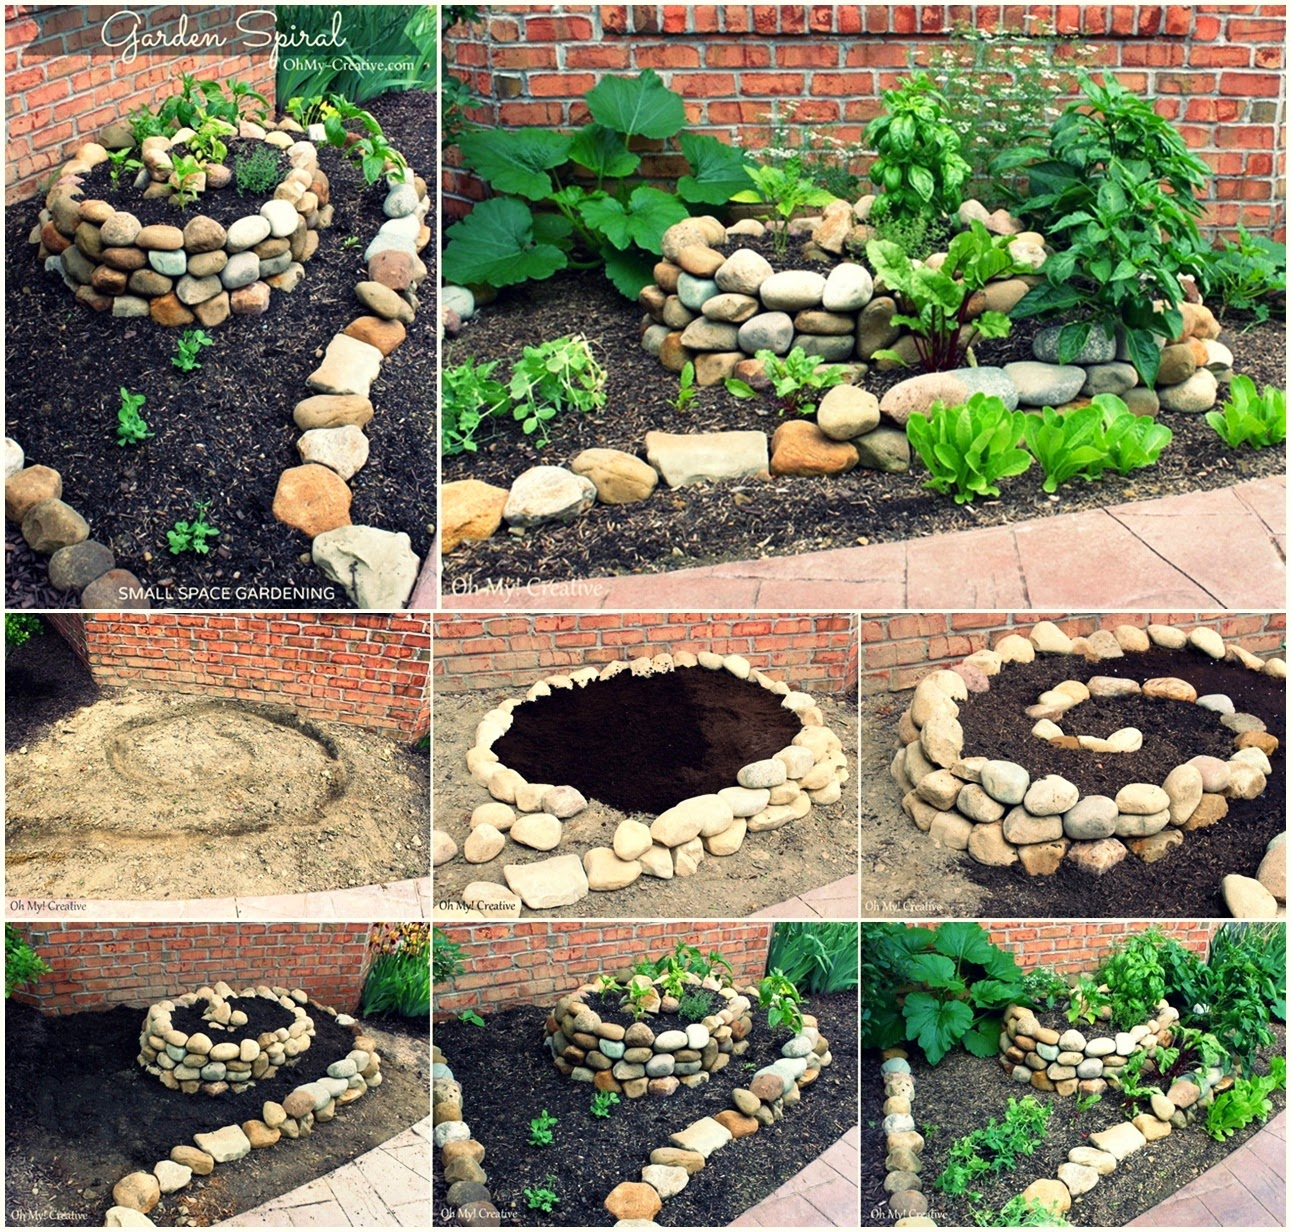 Diy create a small vegetable garden using a garden spiral for Diy vegetable garden